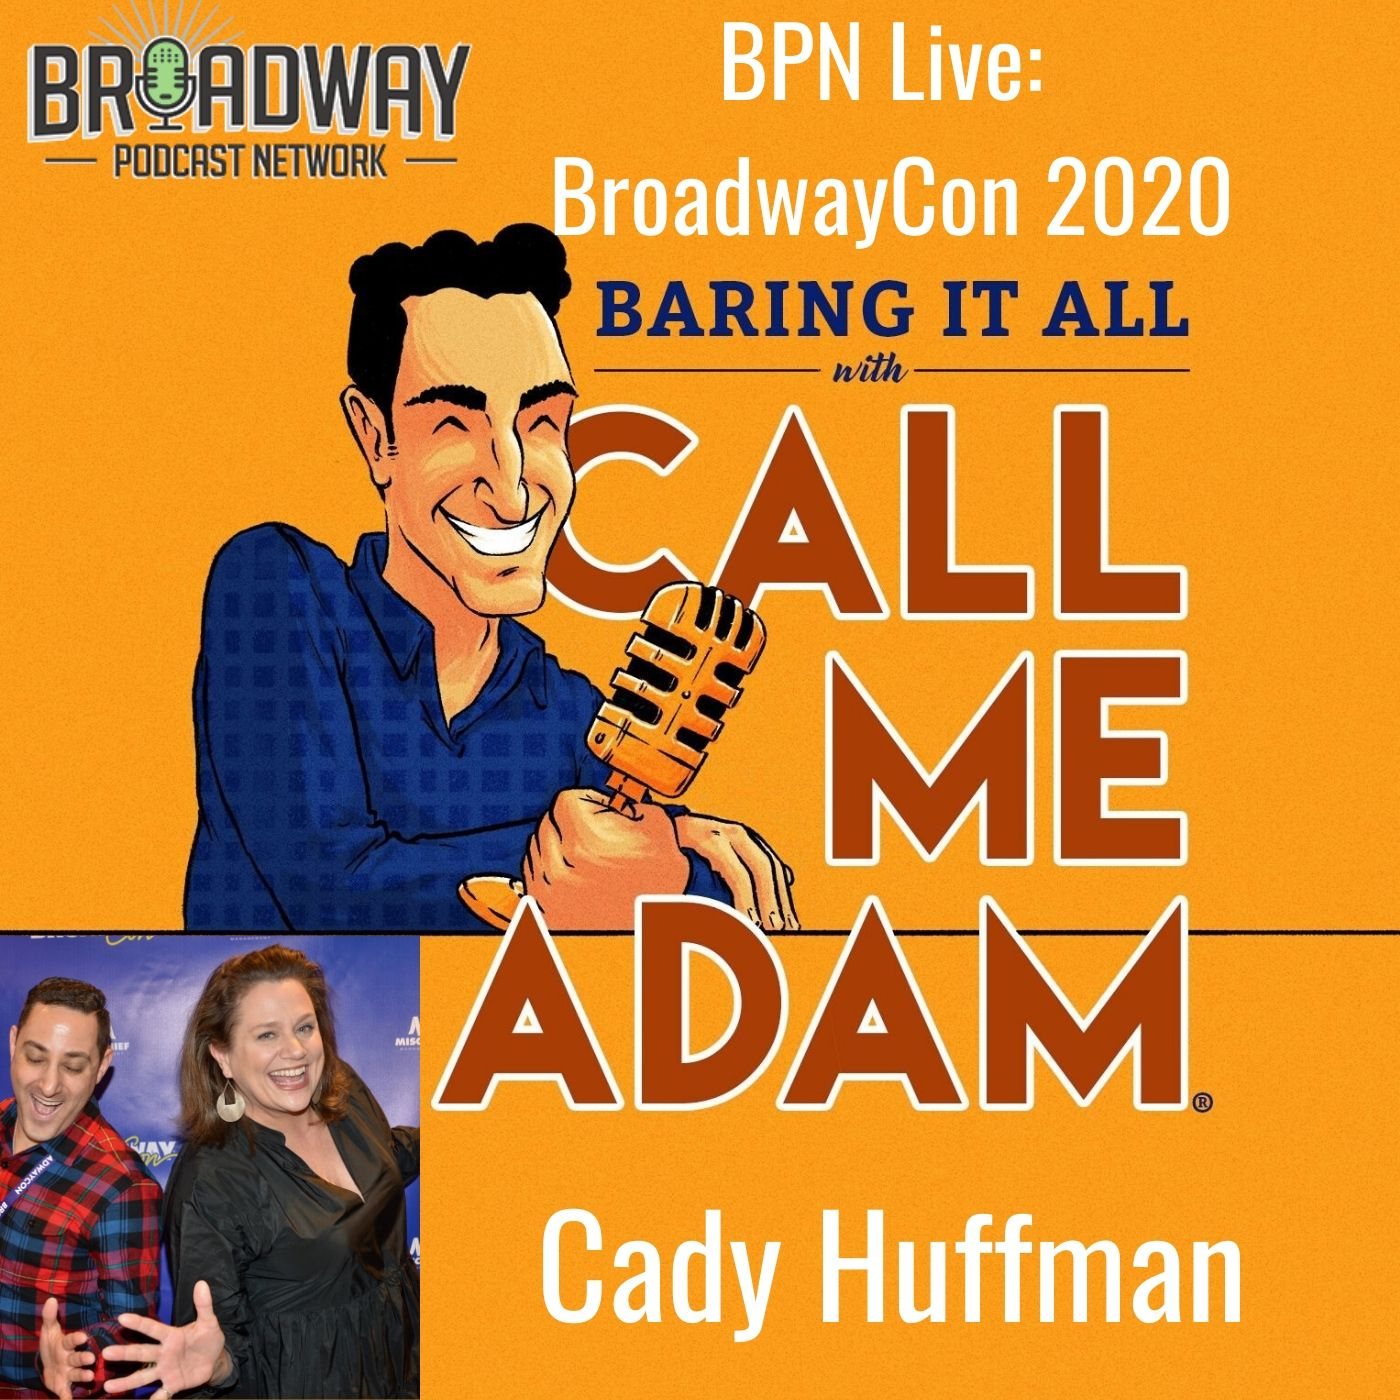 Baring It All With Call Me Adam BPN Live BroadwayCon 2020 Cady Huffman